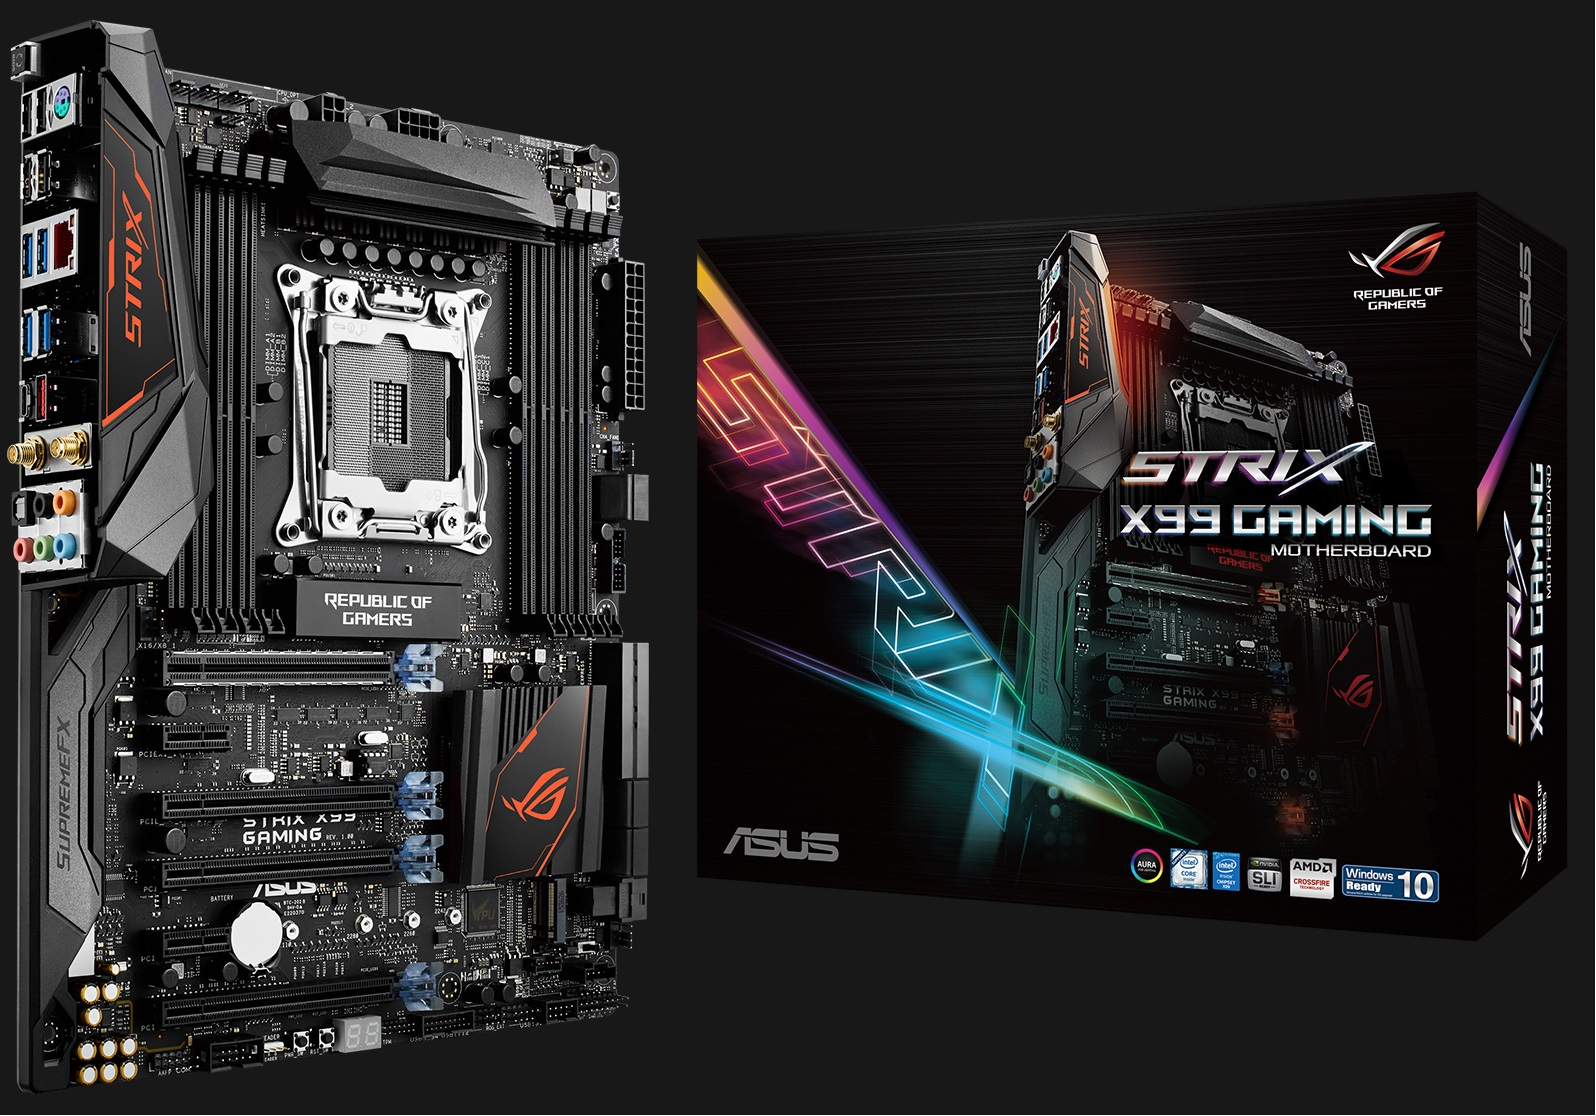 Mainboard ASUS STRIX X99 Gaming - LGA 2011